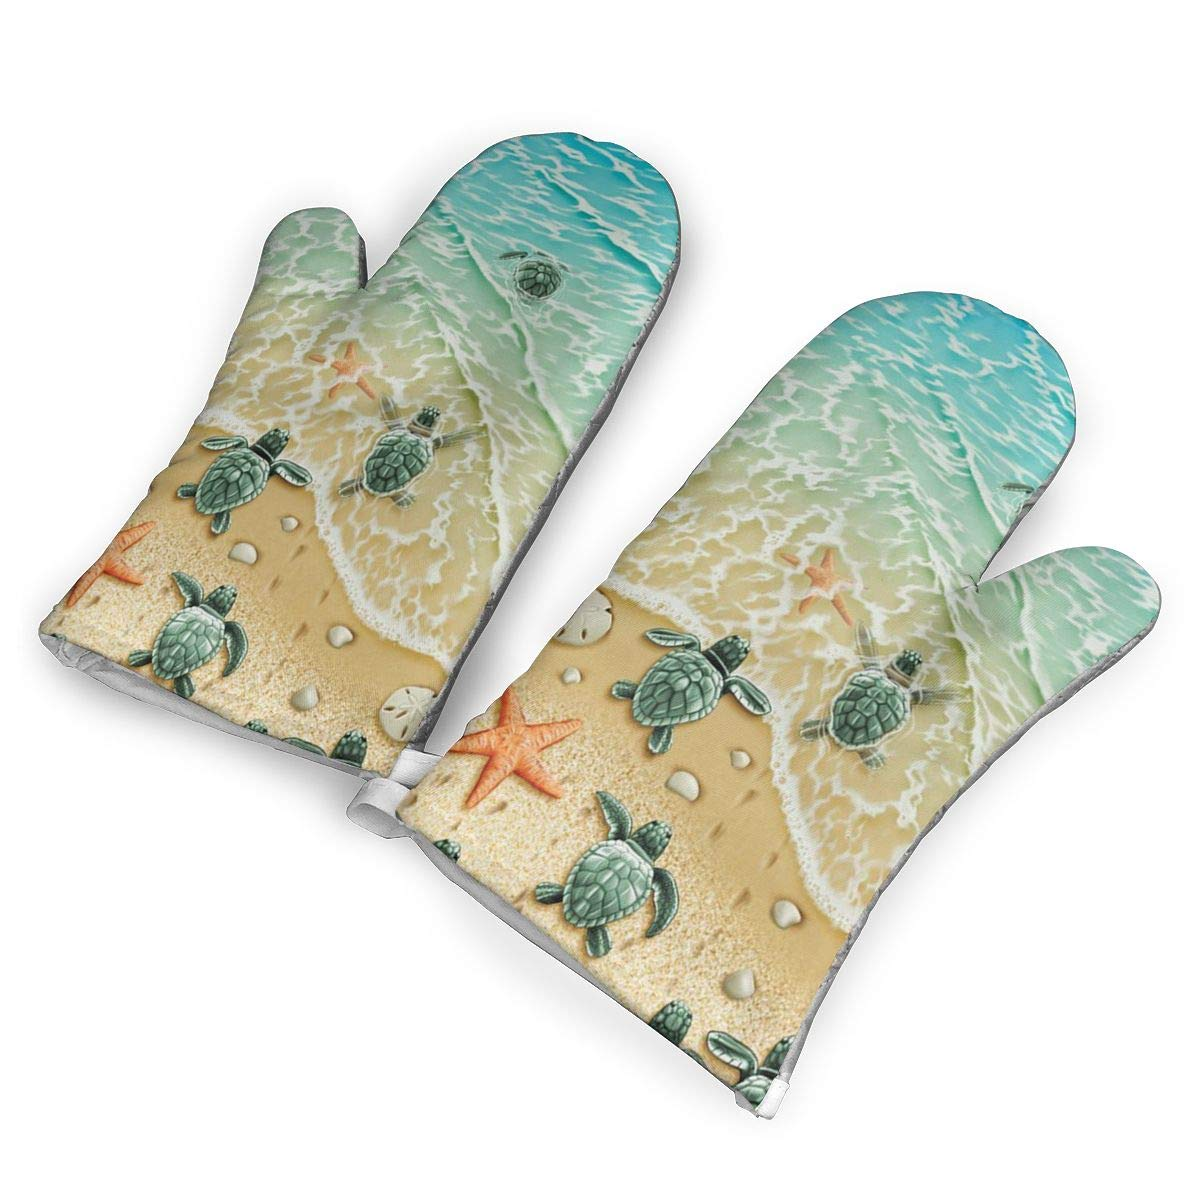 Turtles On The Beach Oven Mitts Gloves 2 Set Microwave BBQ Oven Cotton Baking Pot Mitts, Kitchen Glove Heat Resistant Cook Gloves Mitts Cooking, Baking, Barbecue Potholder, Present